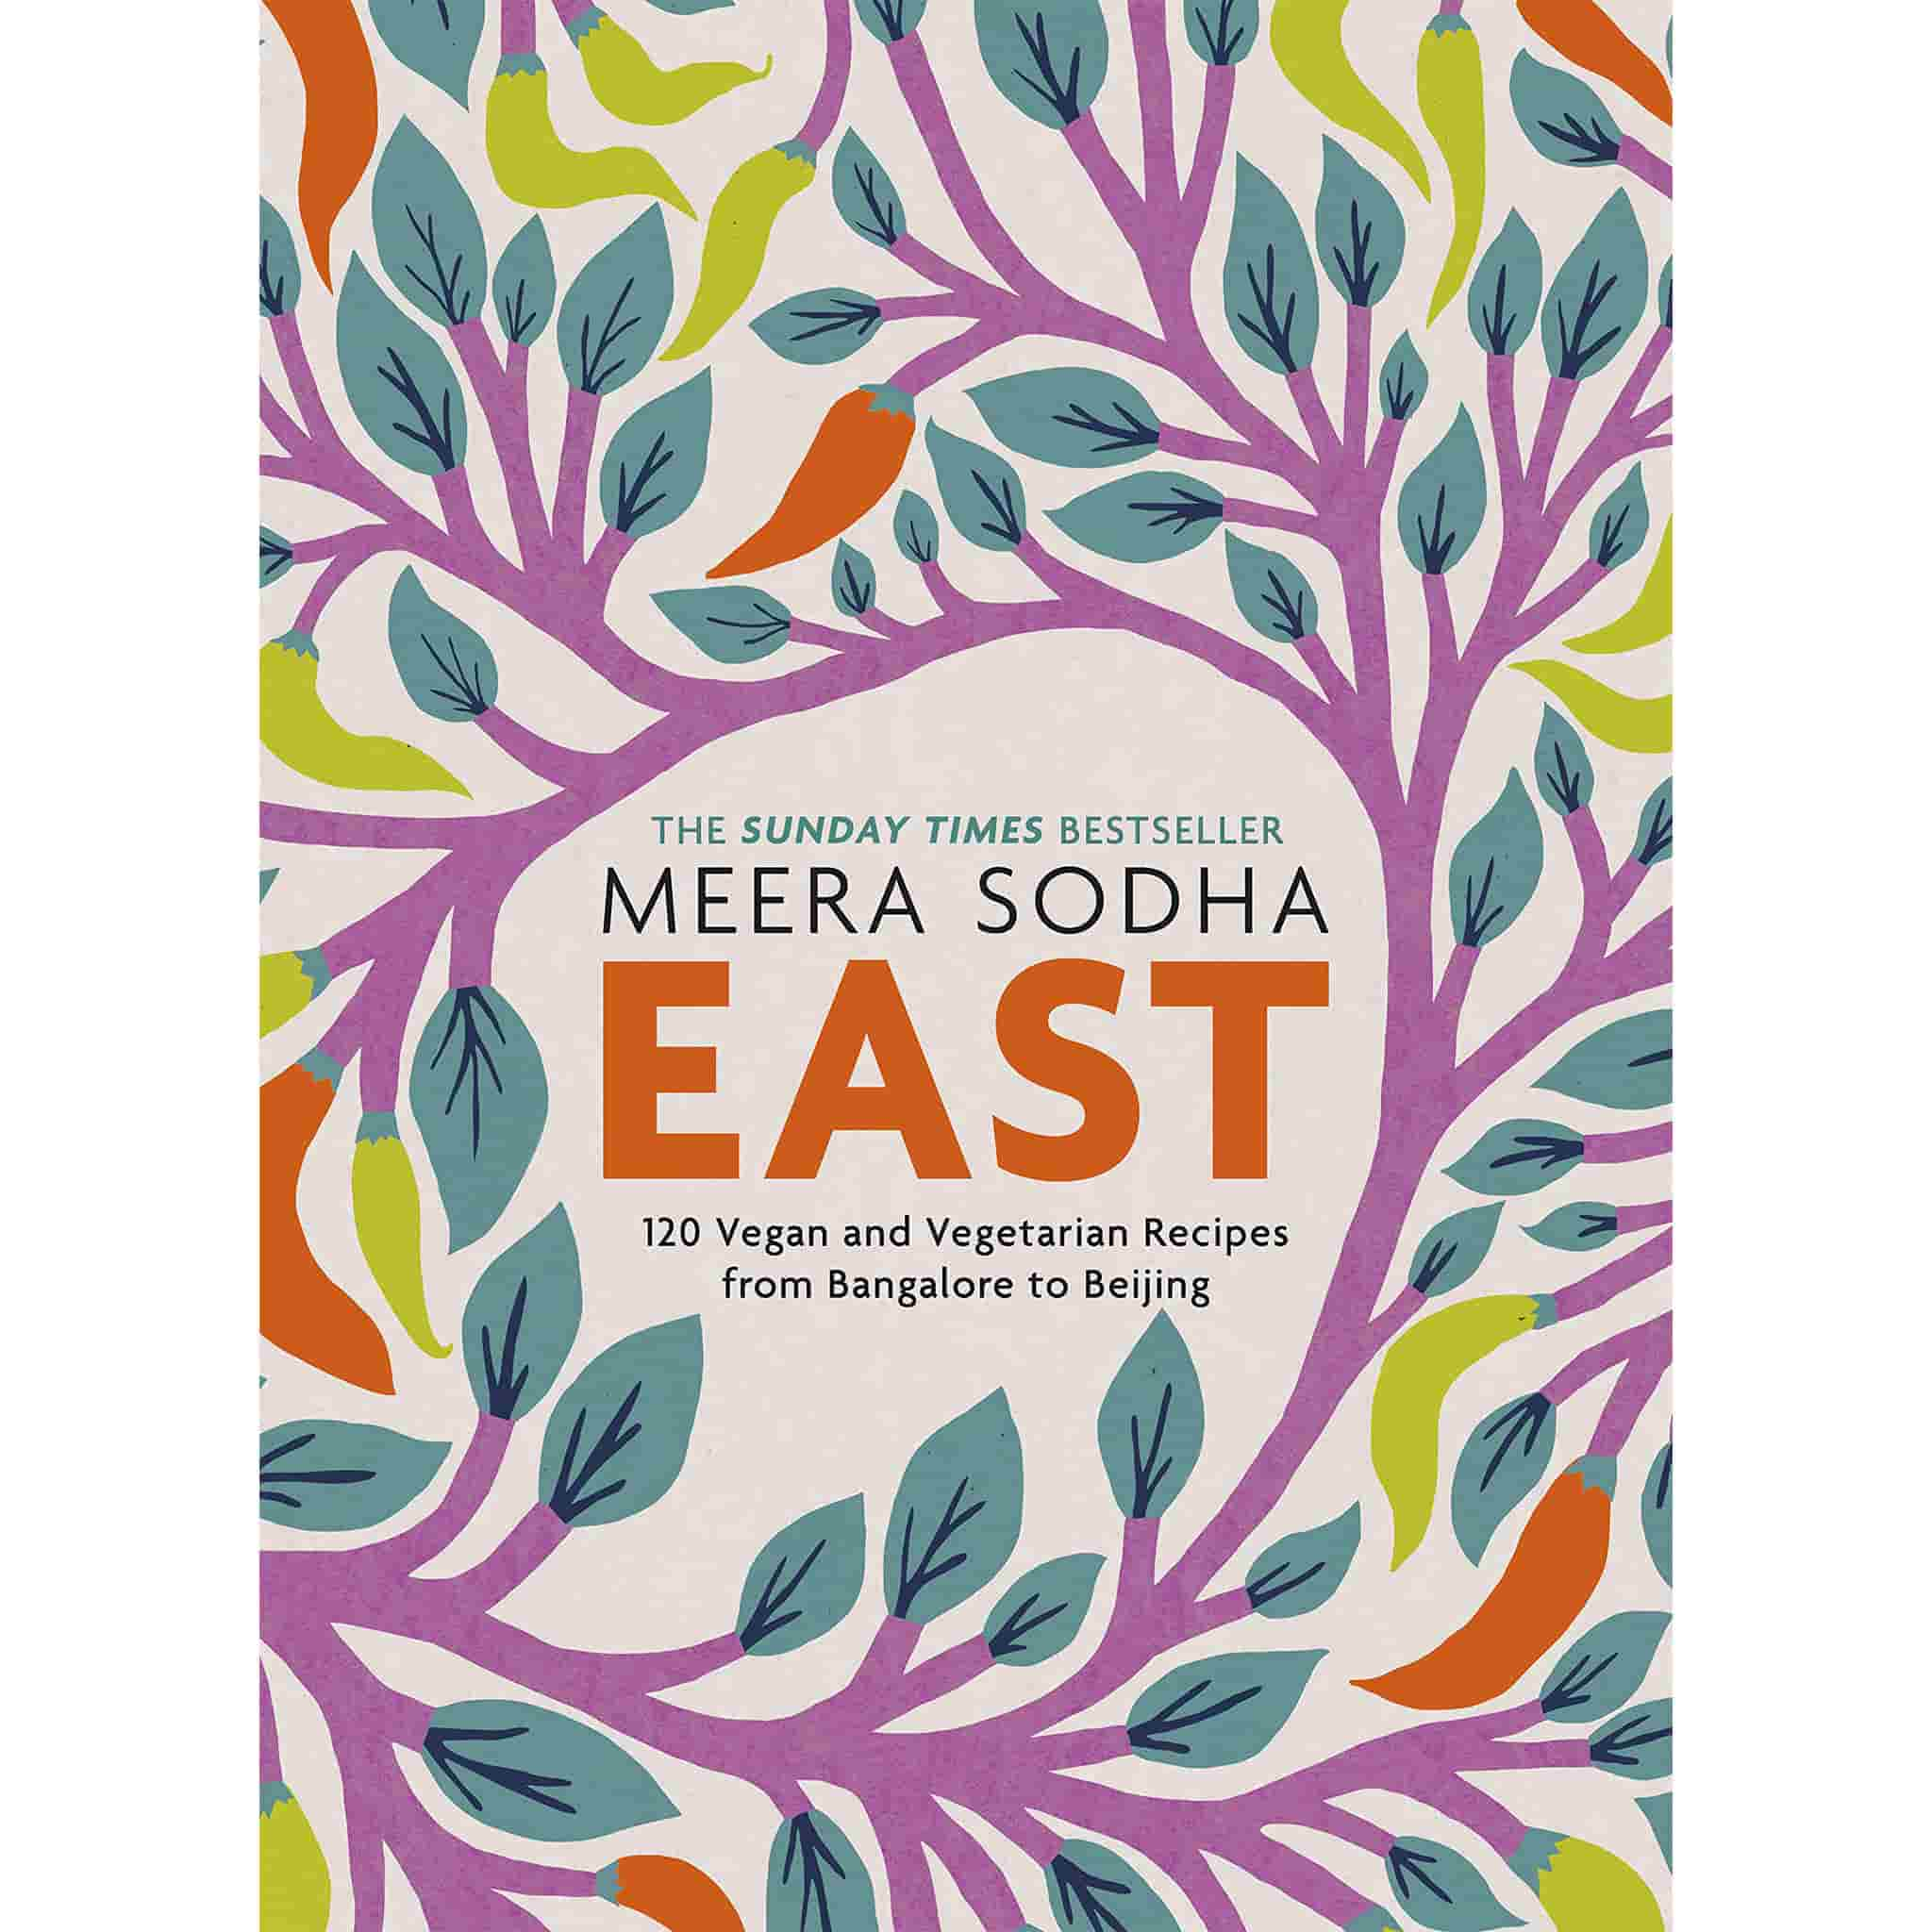 East by Meera Sodha